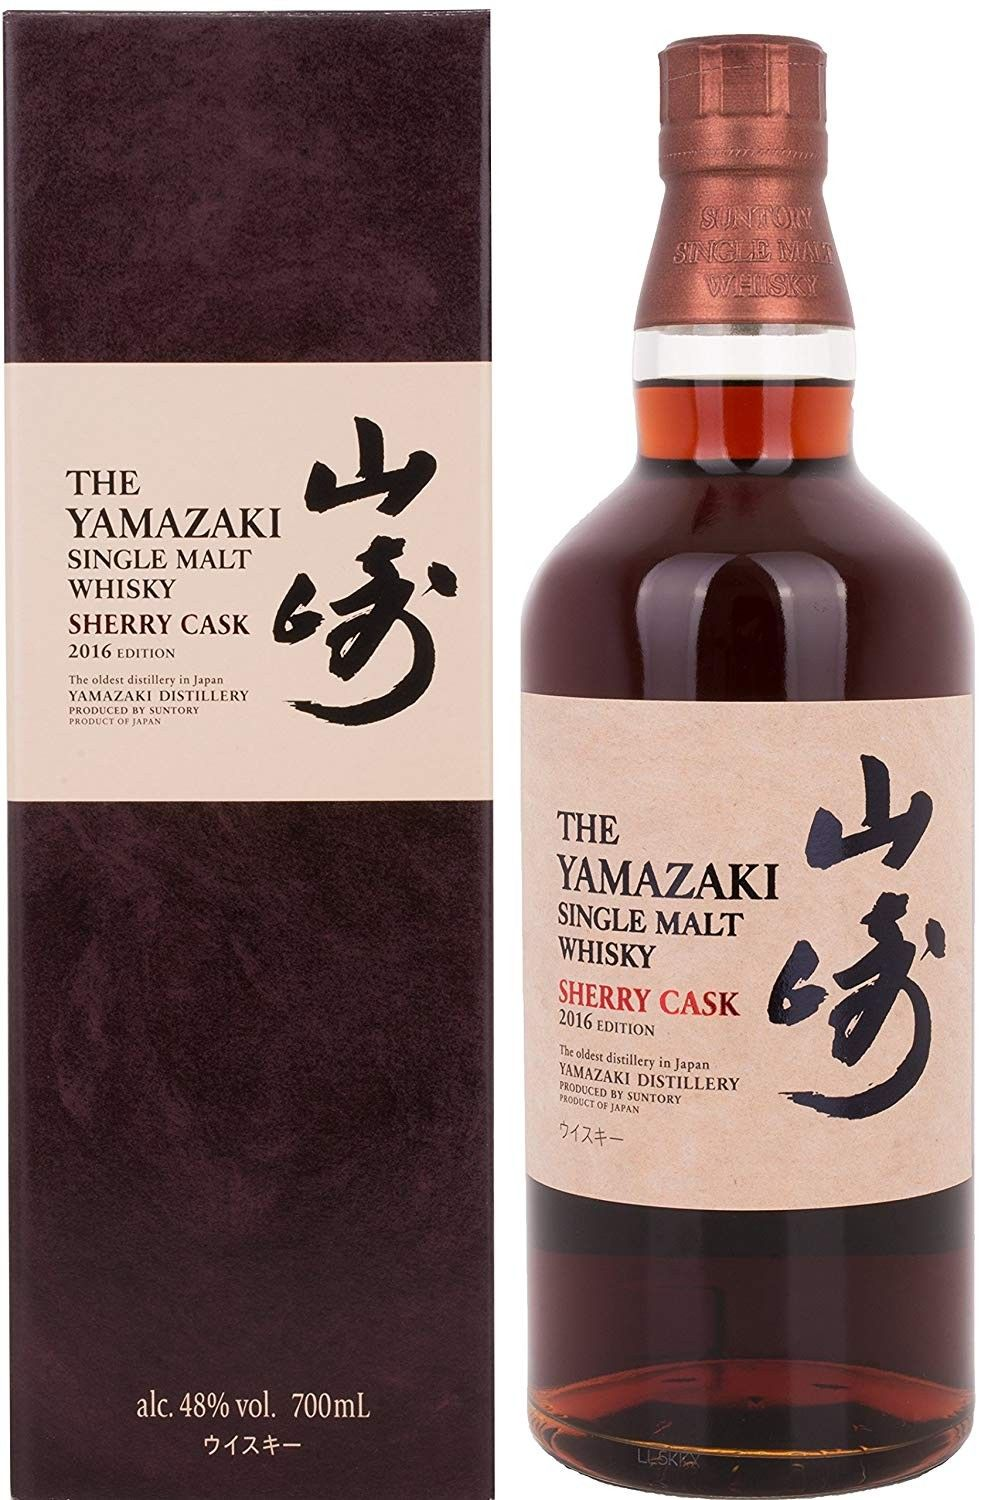 Suntory The Yamazaki Single Malt Whisky Sherry Cask 2016 Edition 70cl Whisky Malt Whisky Single Malt